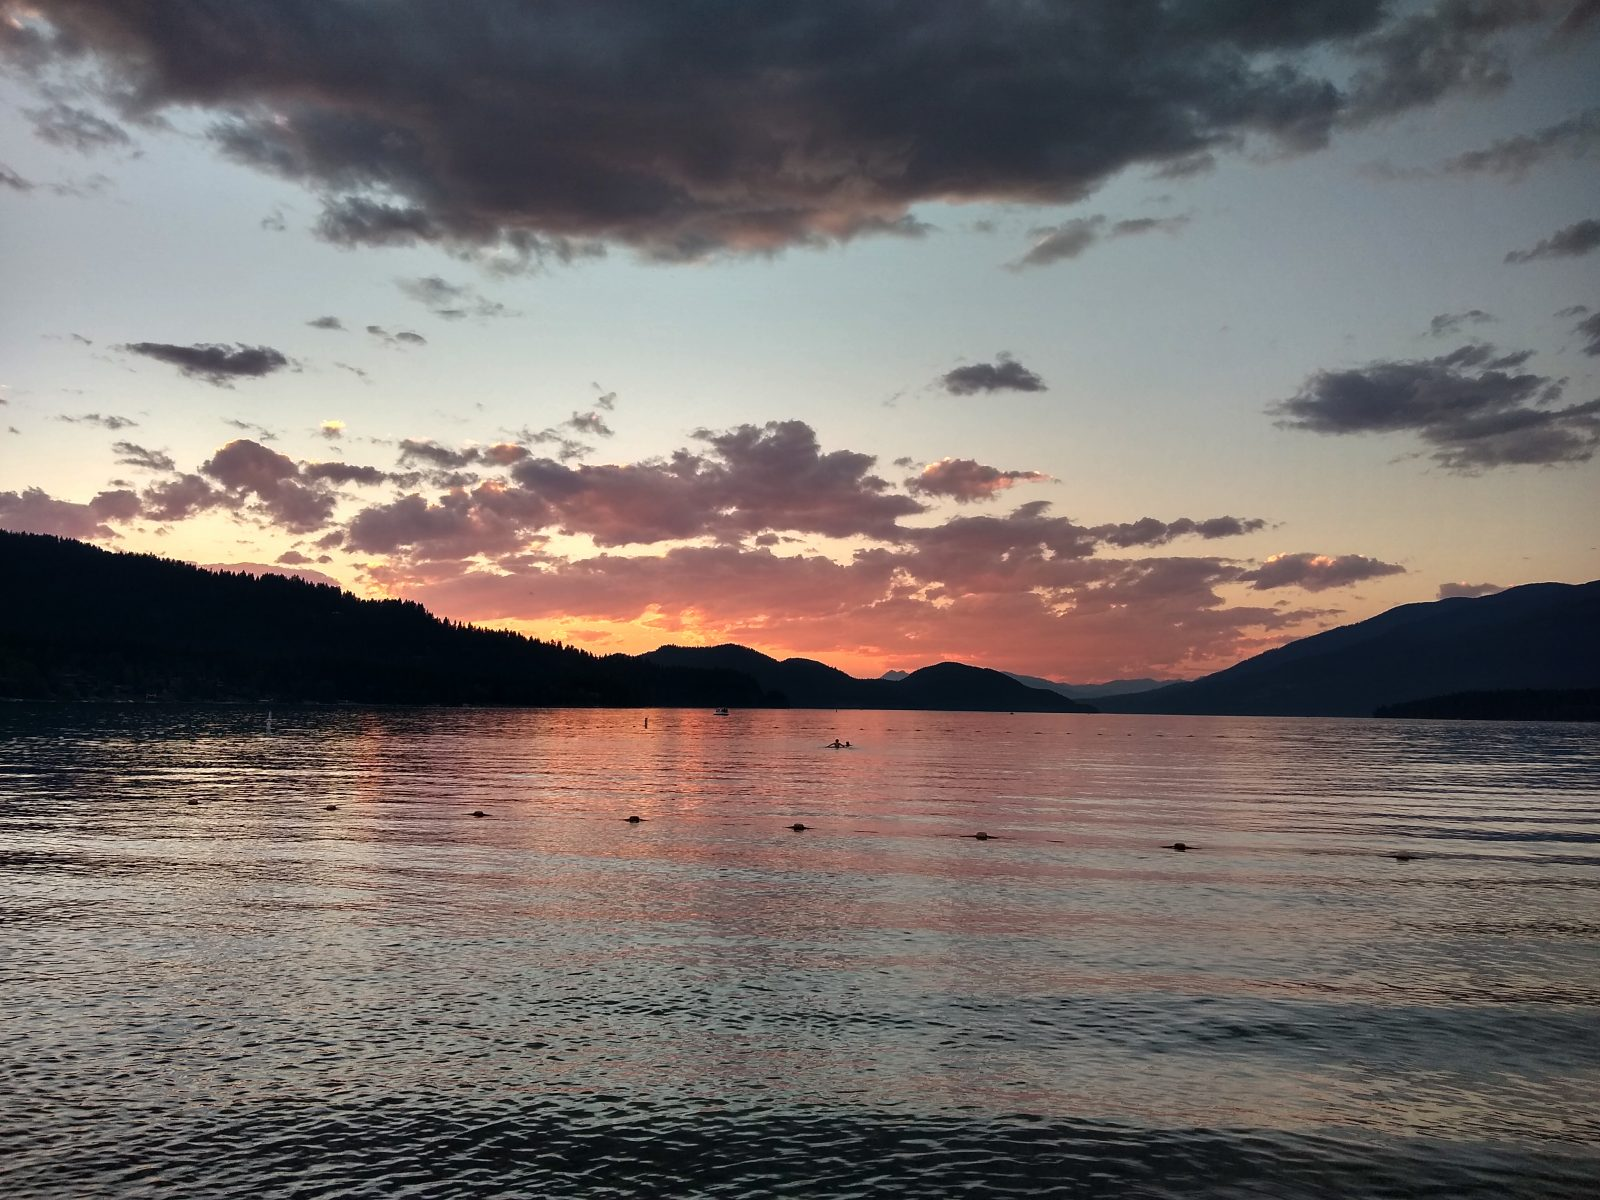 Whitefish Lake - August 21, 2020